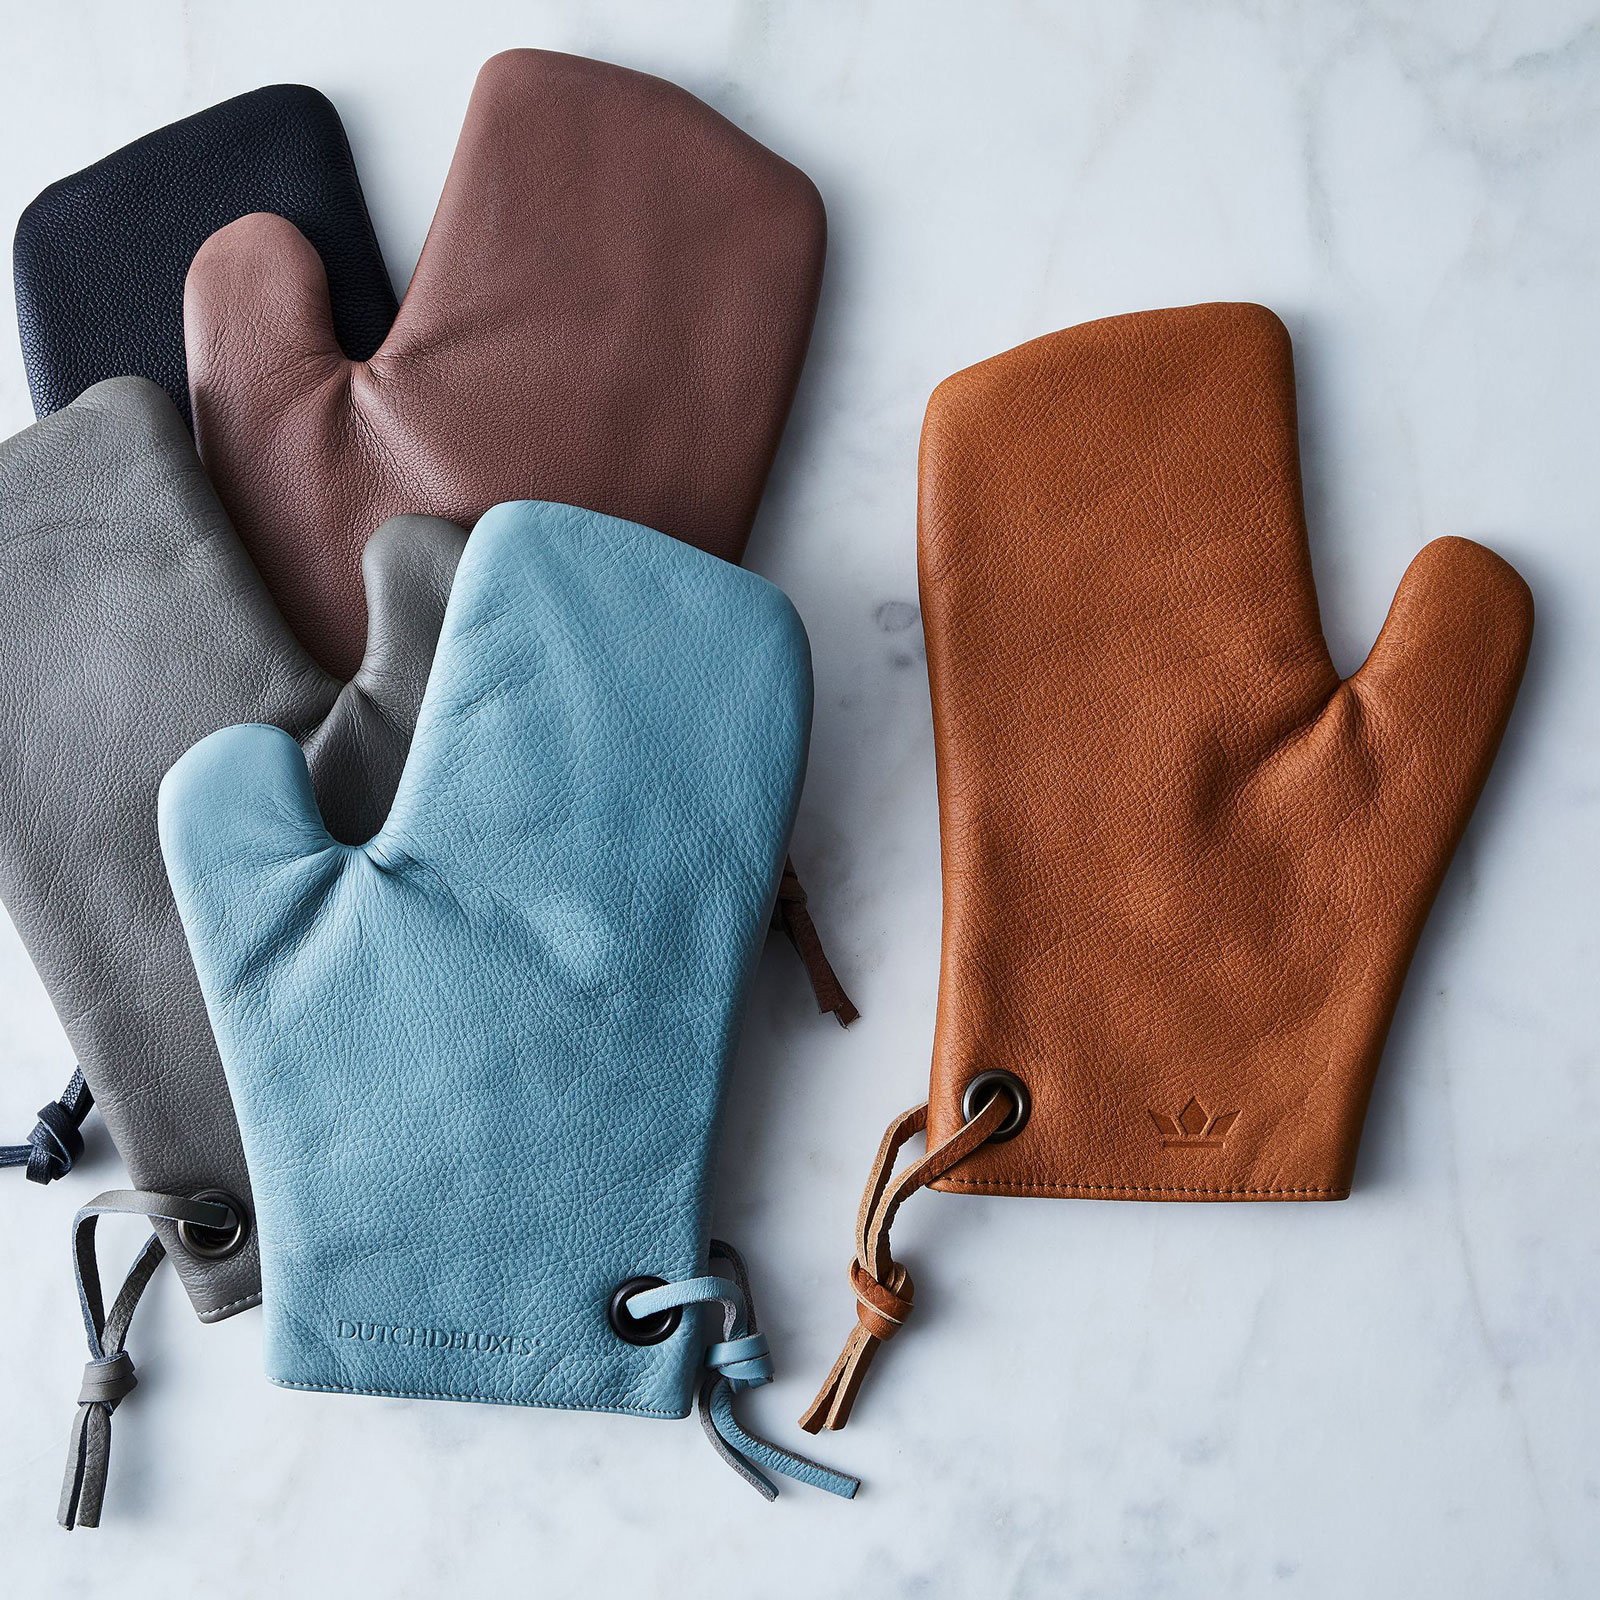 Food52 Oven Mitts